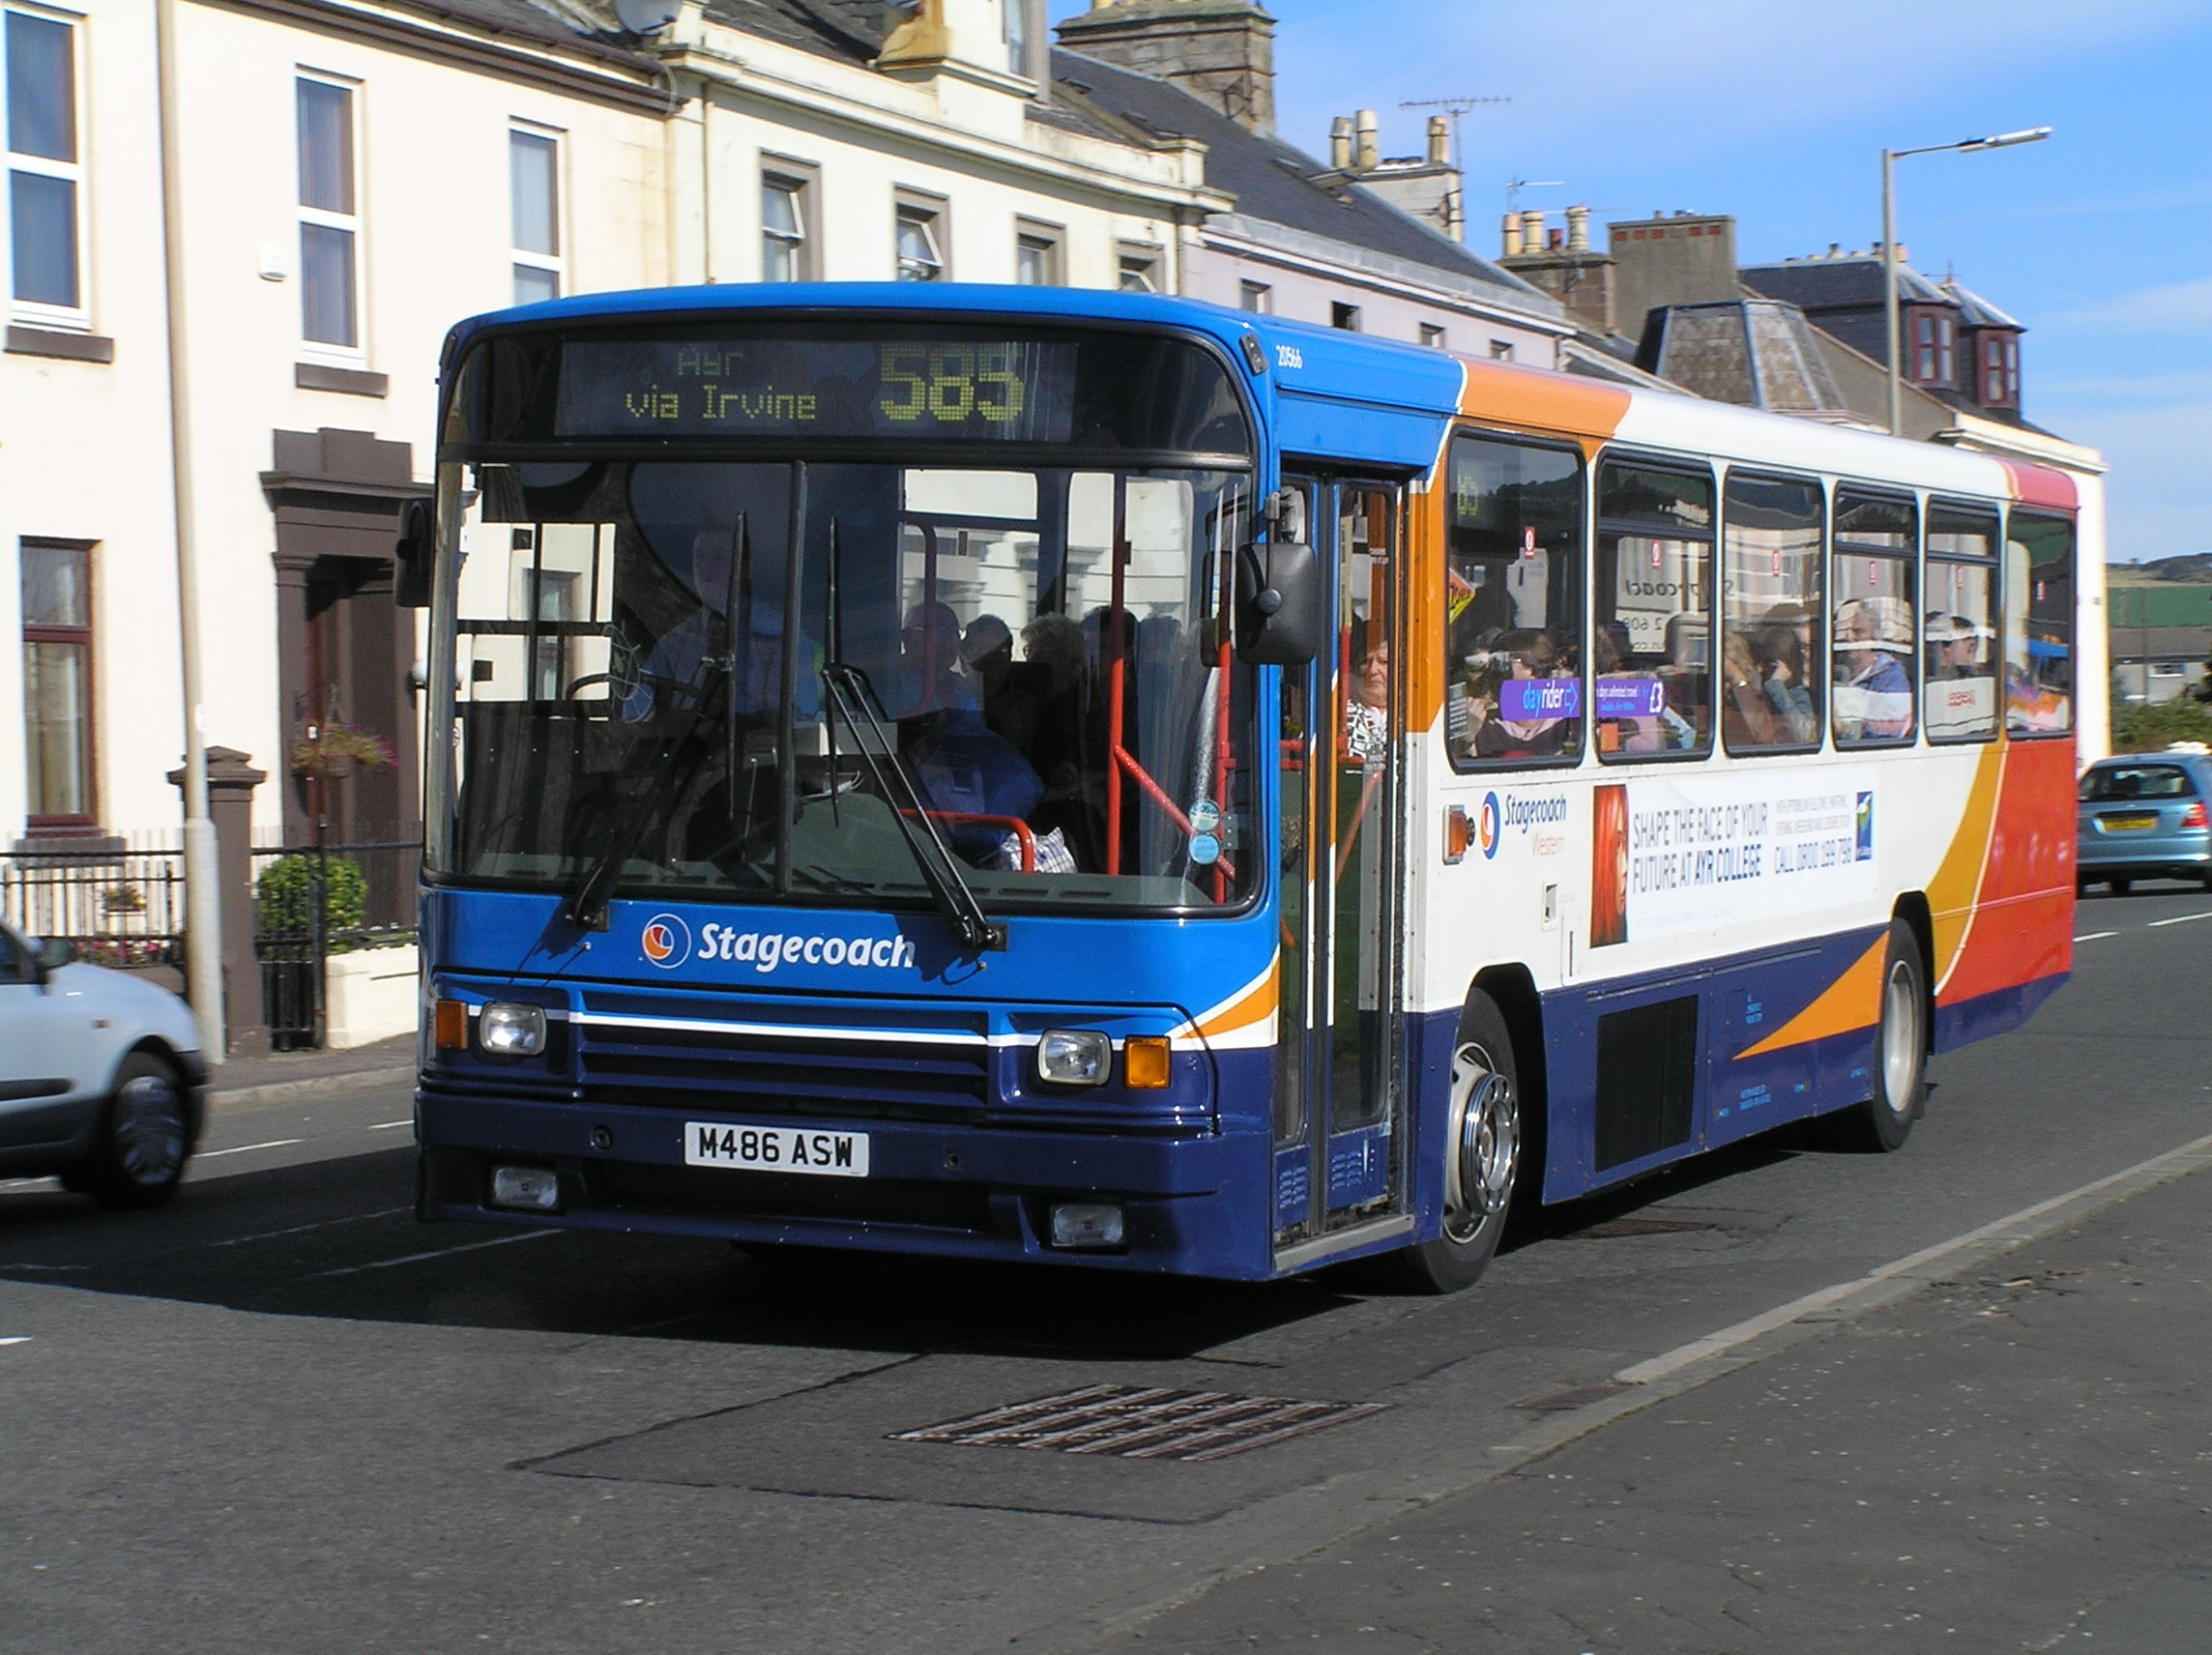 Stagecoach's 585 service.